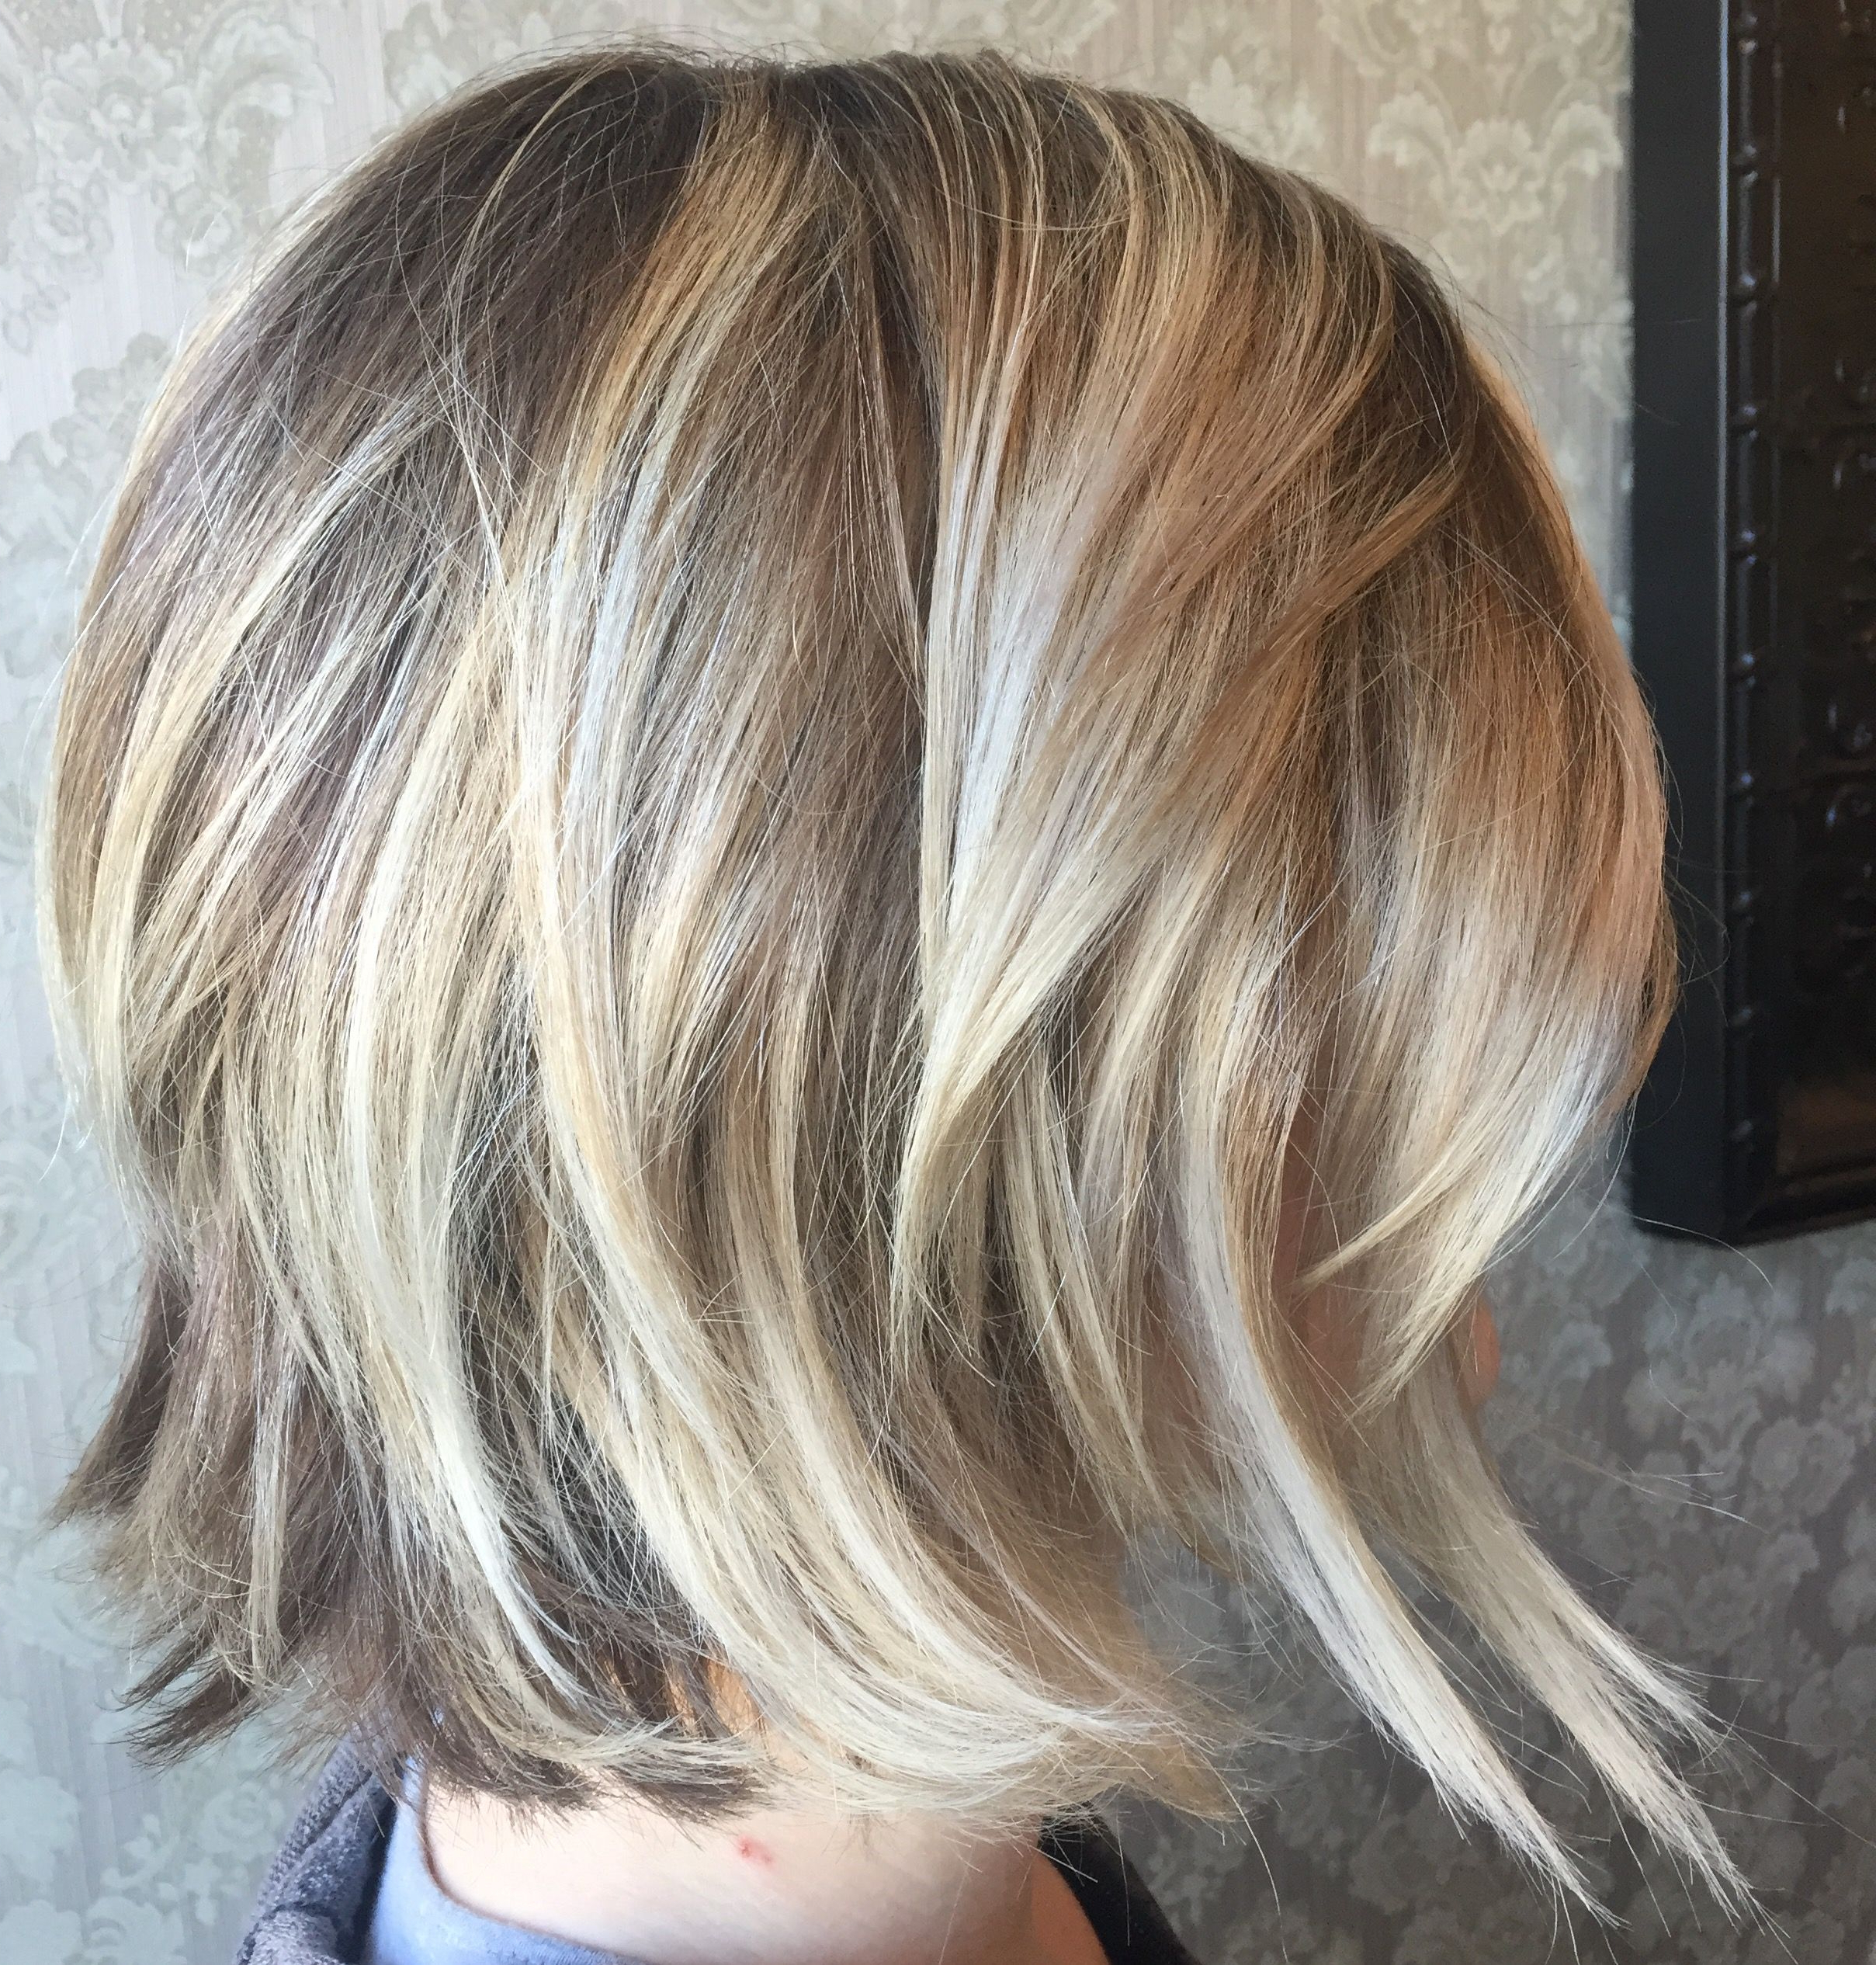 Fashionable Ash Blonde Bob Hairstyles With Light Long Layers Regarding Blonde On Blonde Balayage Highlights, Angled Bob Haircut, Platinum (View 4 of 20)